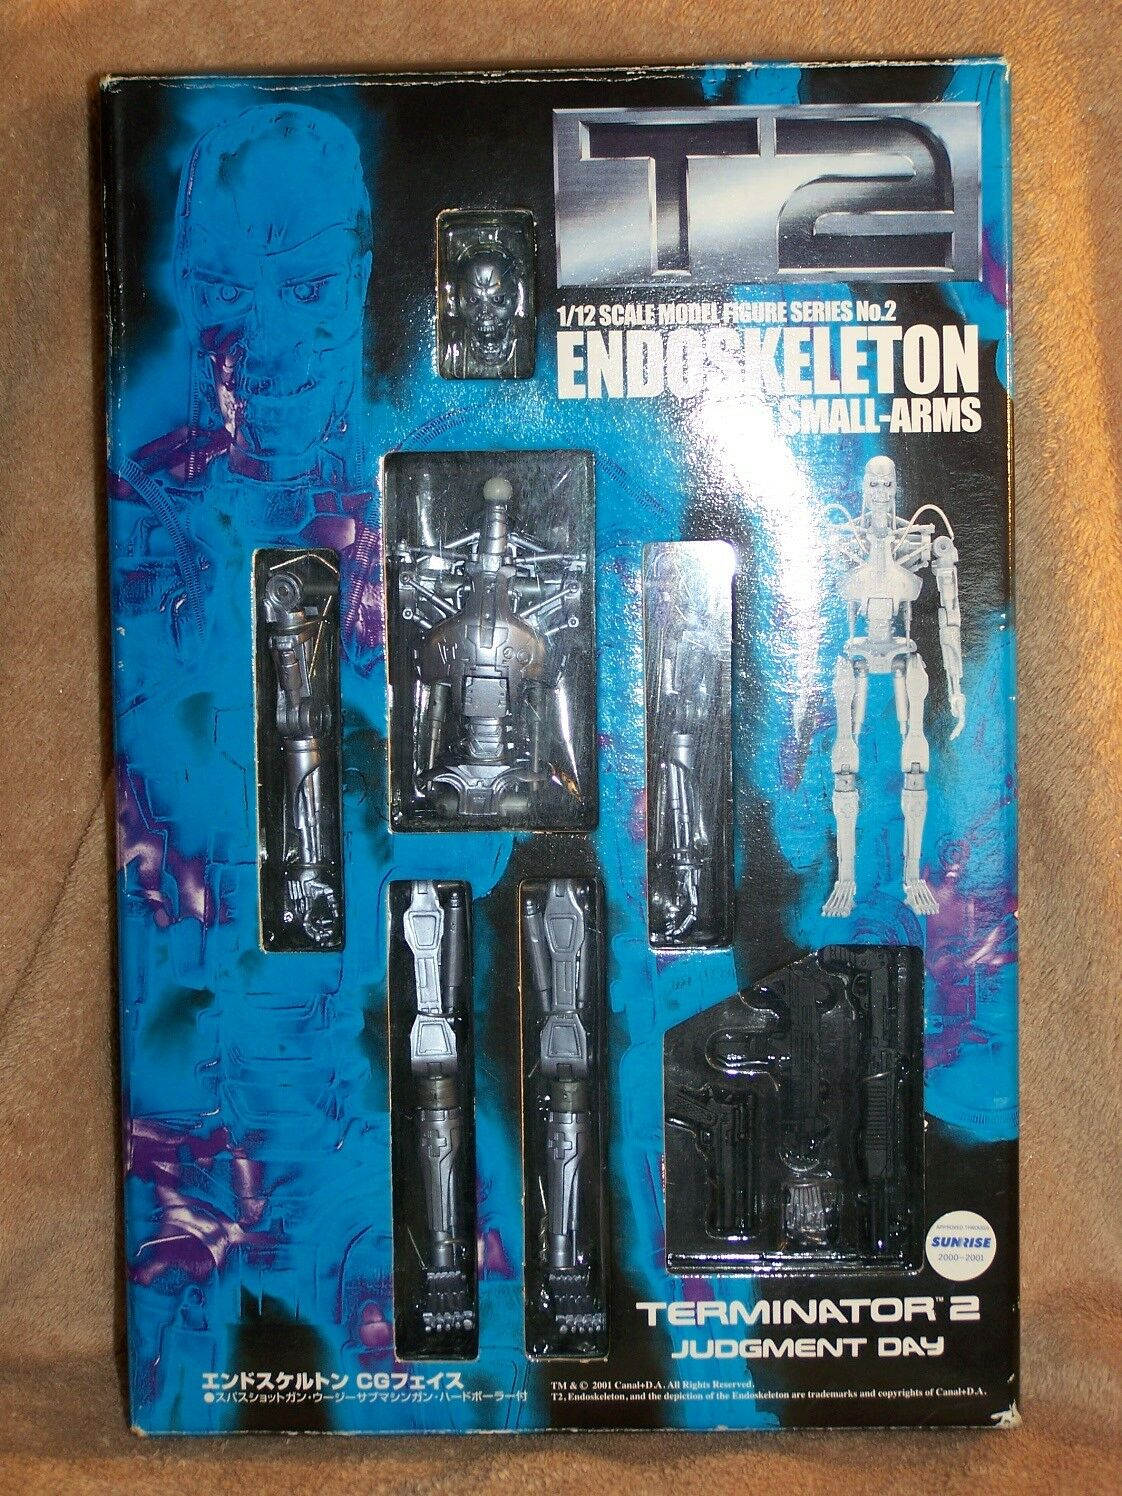 TERMINATOR 2 - AOSHIMA - T800 -  Endoskeleton With Small Arms